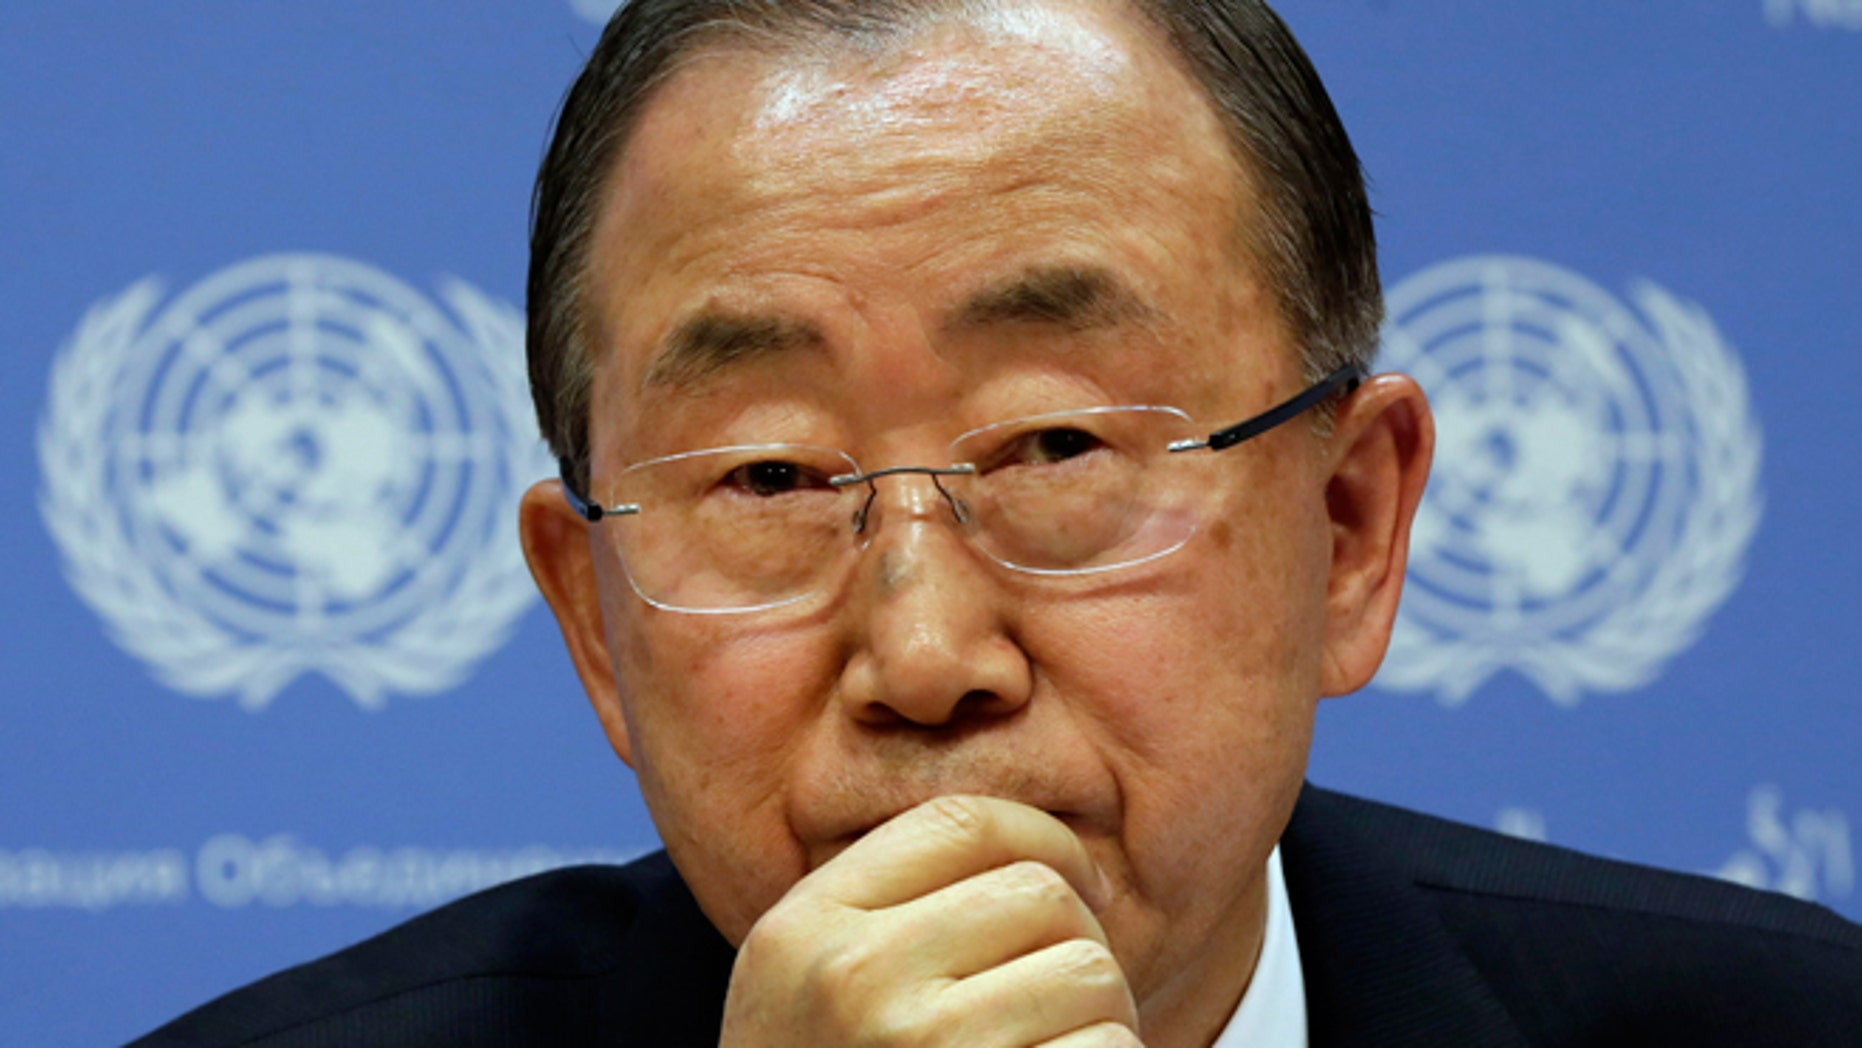 FILE - Sept. 16, 2014: United Nations Secretary General Ban Ki-moon participates in a news conference, at United Nations headquarters.